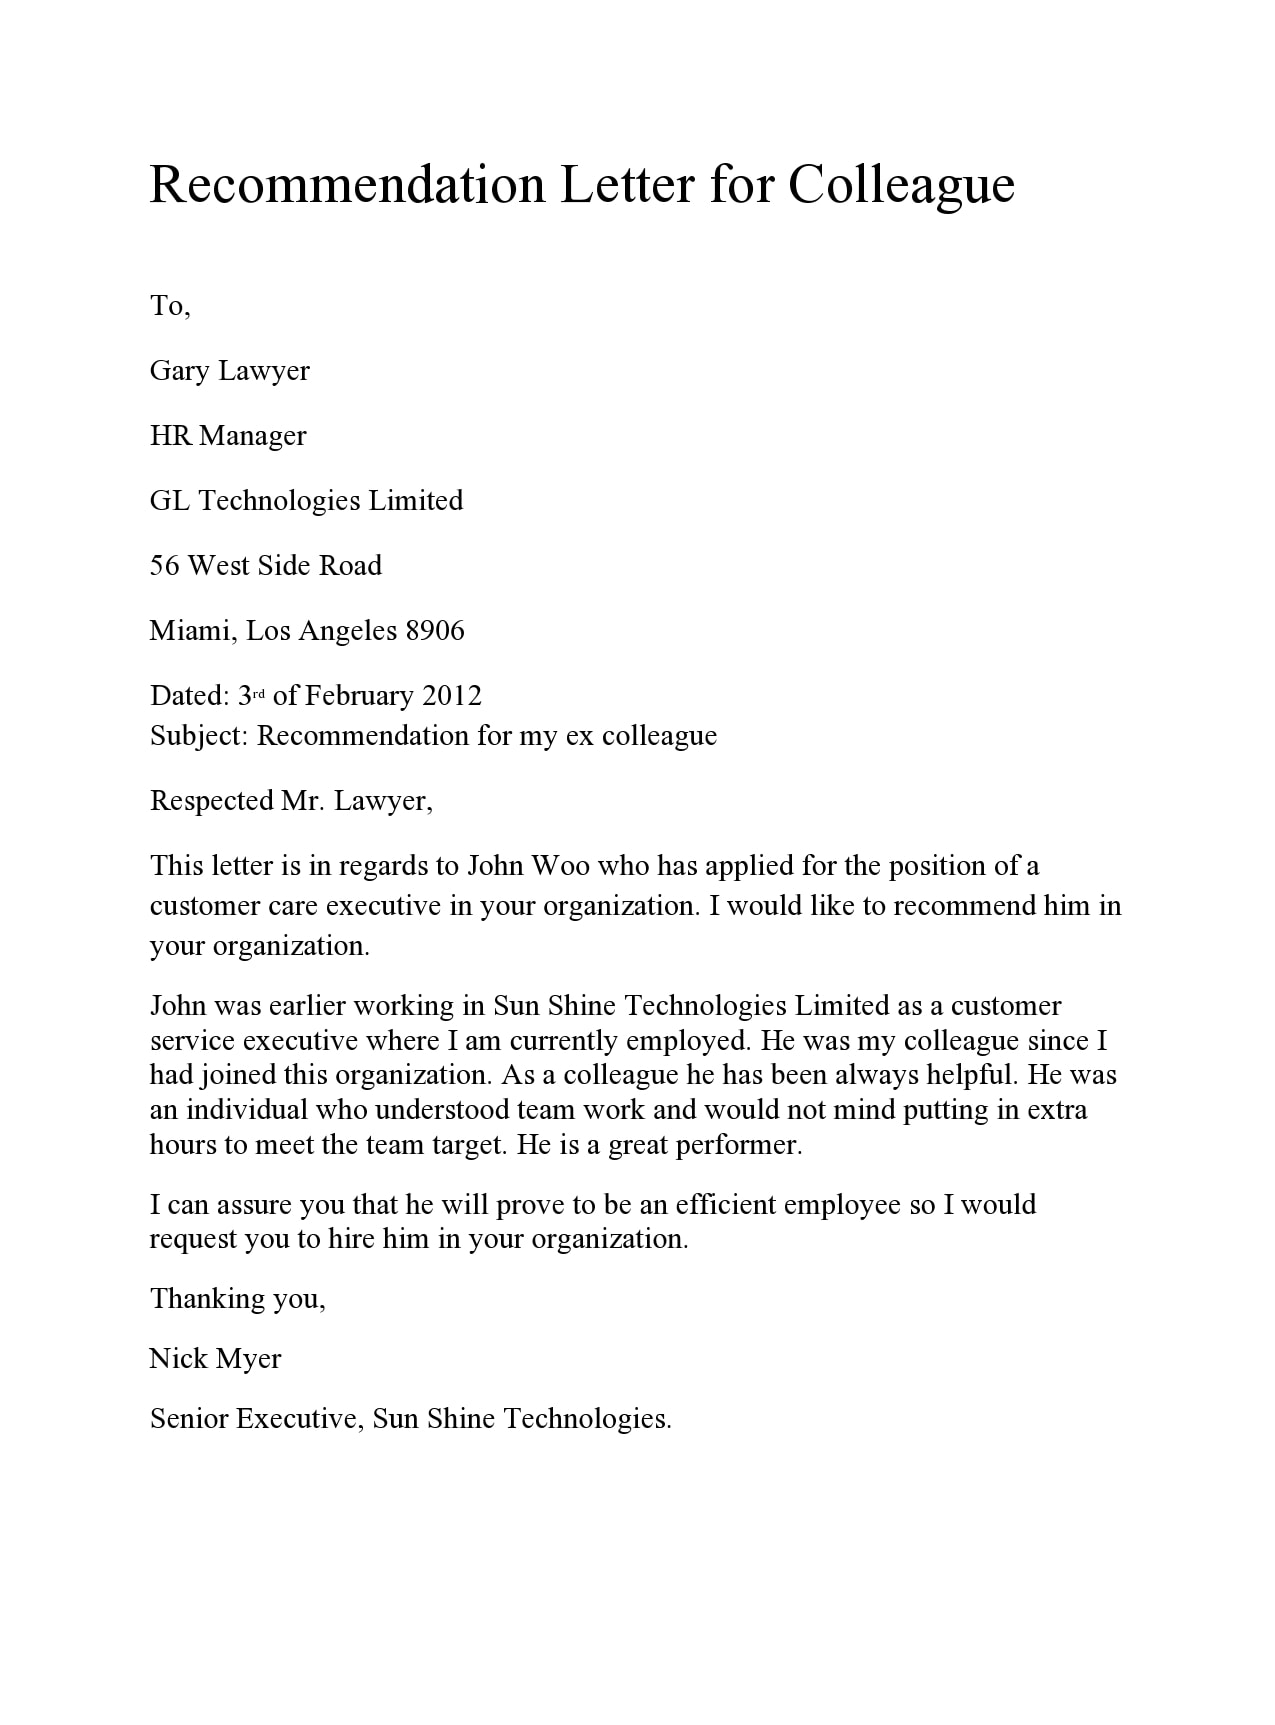 30 letter of recommendation for coworker examples